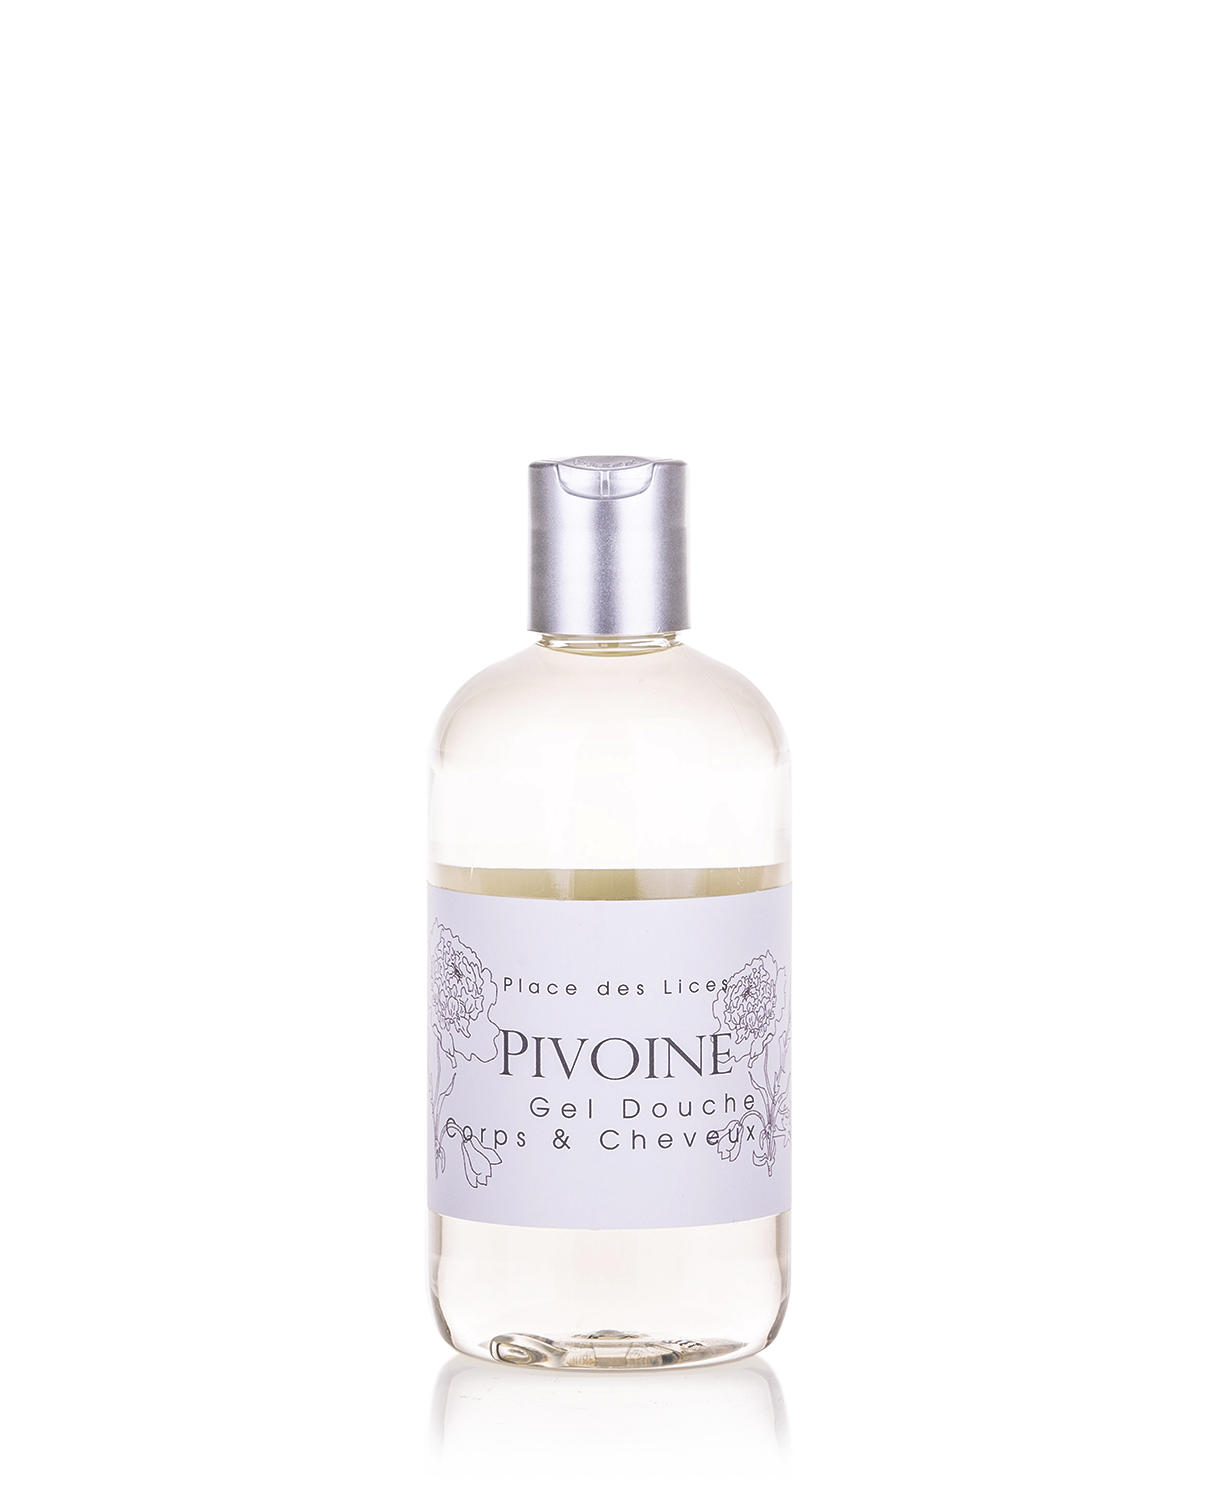 Pivoine gel doccia 250 ml Place des Lices